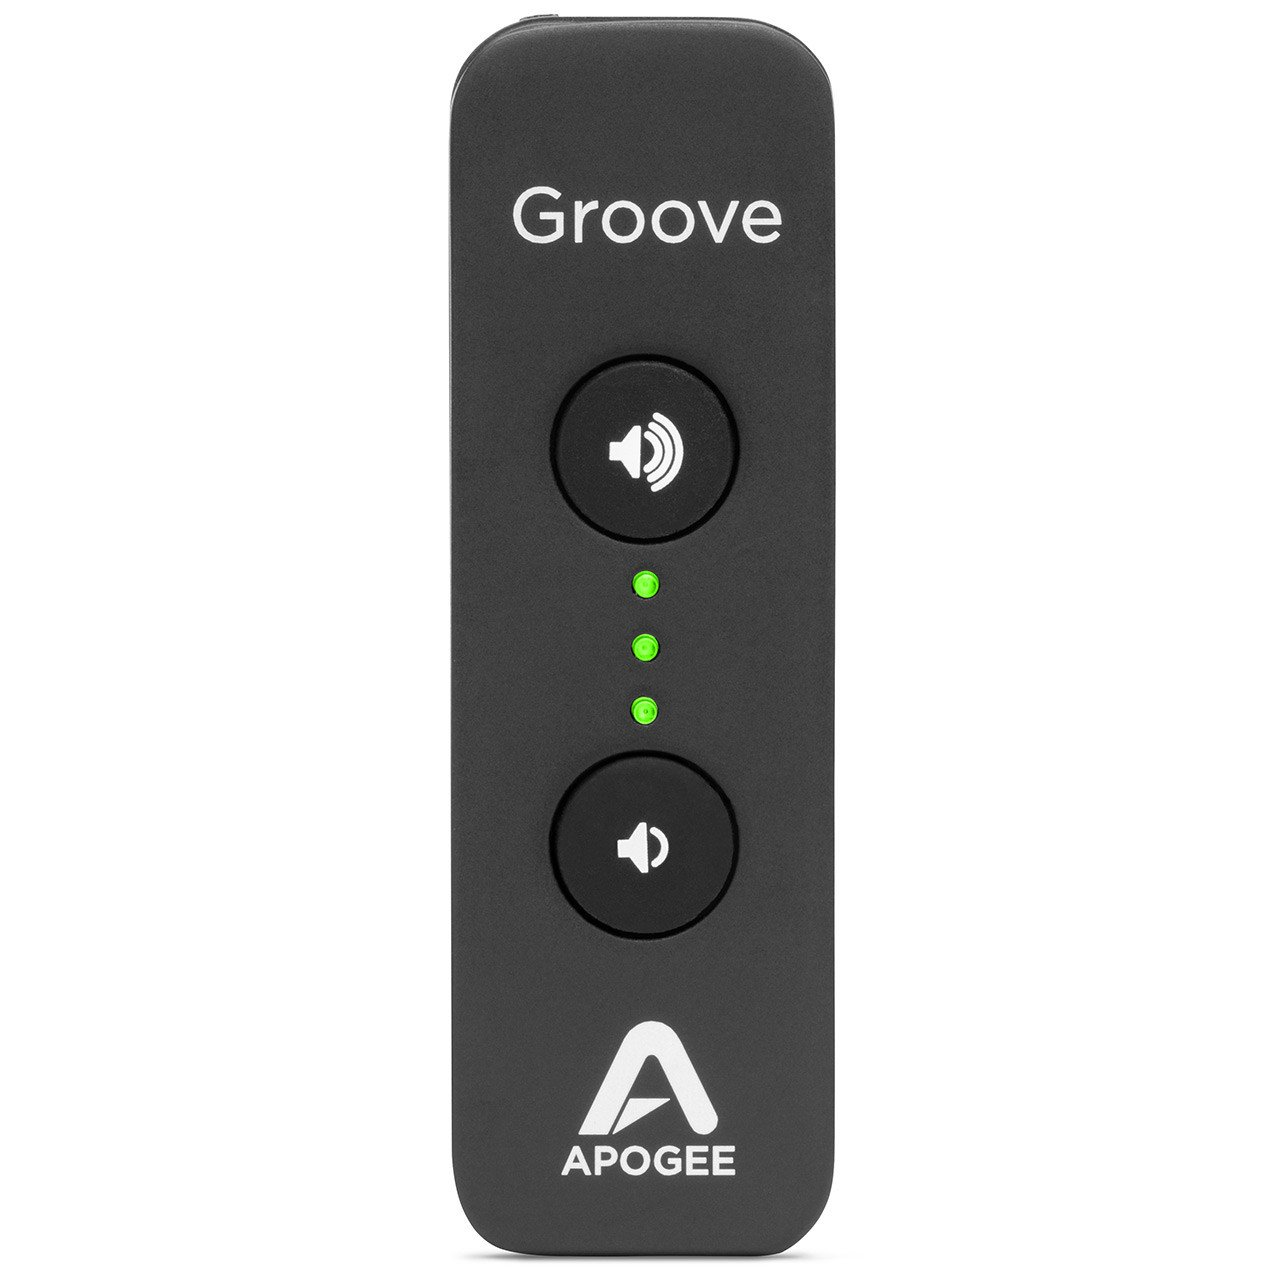 Apogee Groove Portable USB DAC and headphone amp for Mac and PC